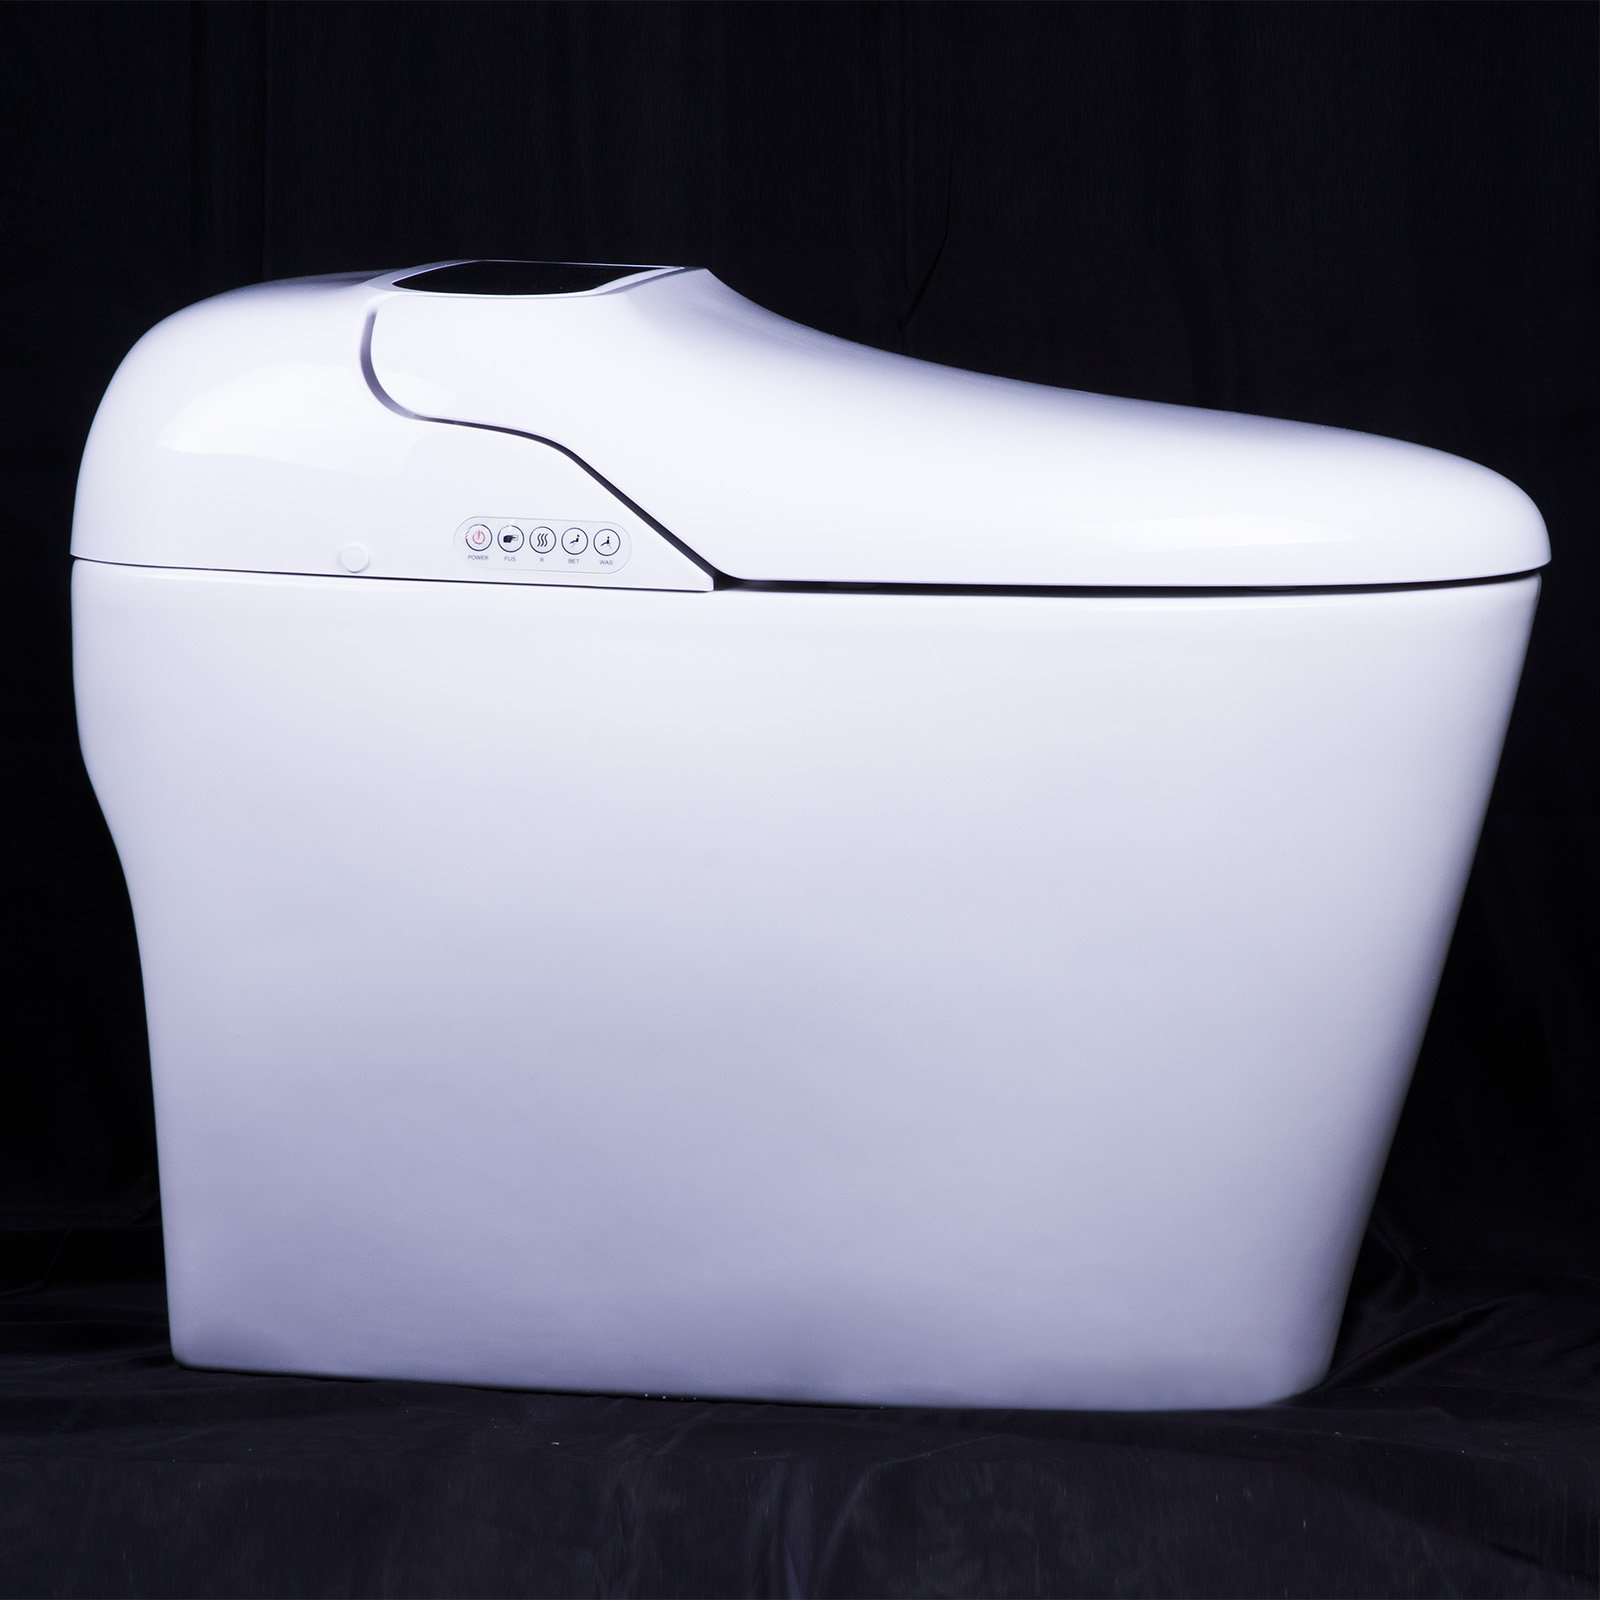 Euroto Luxury Smart Toilet One Piece Toilet with Soft Closing Heated Seat European Design Elongated for Bathroom Toilet Bowls, Toilets, and Toilet Seats by EUROTO (Image #4)